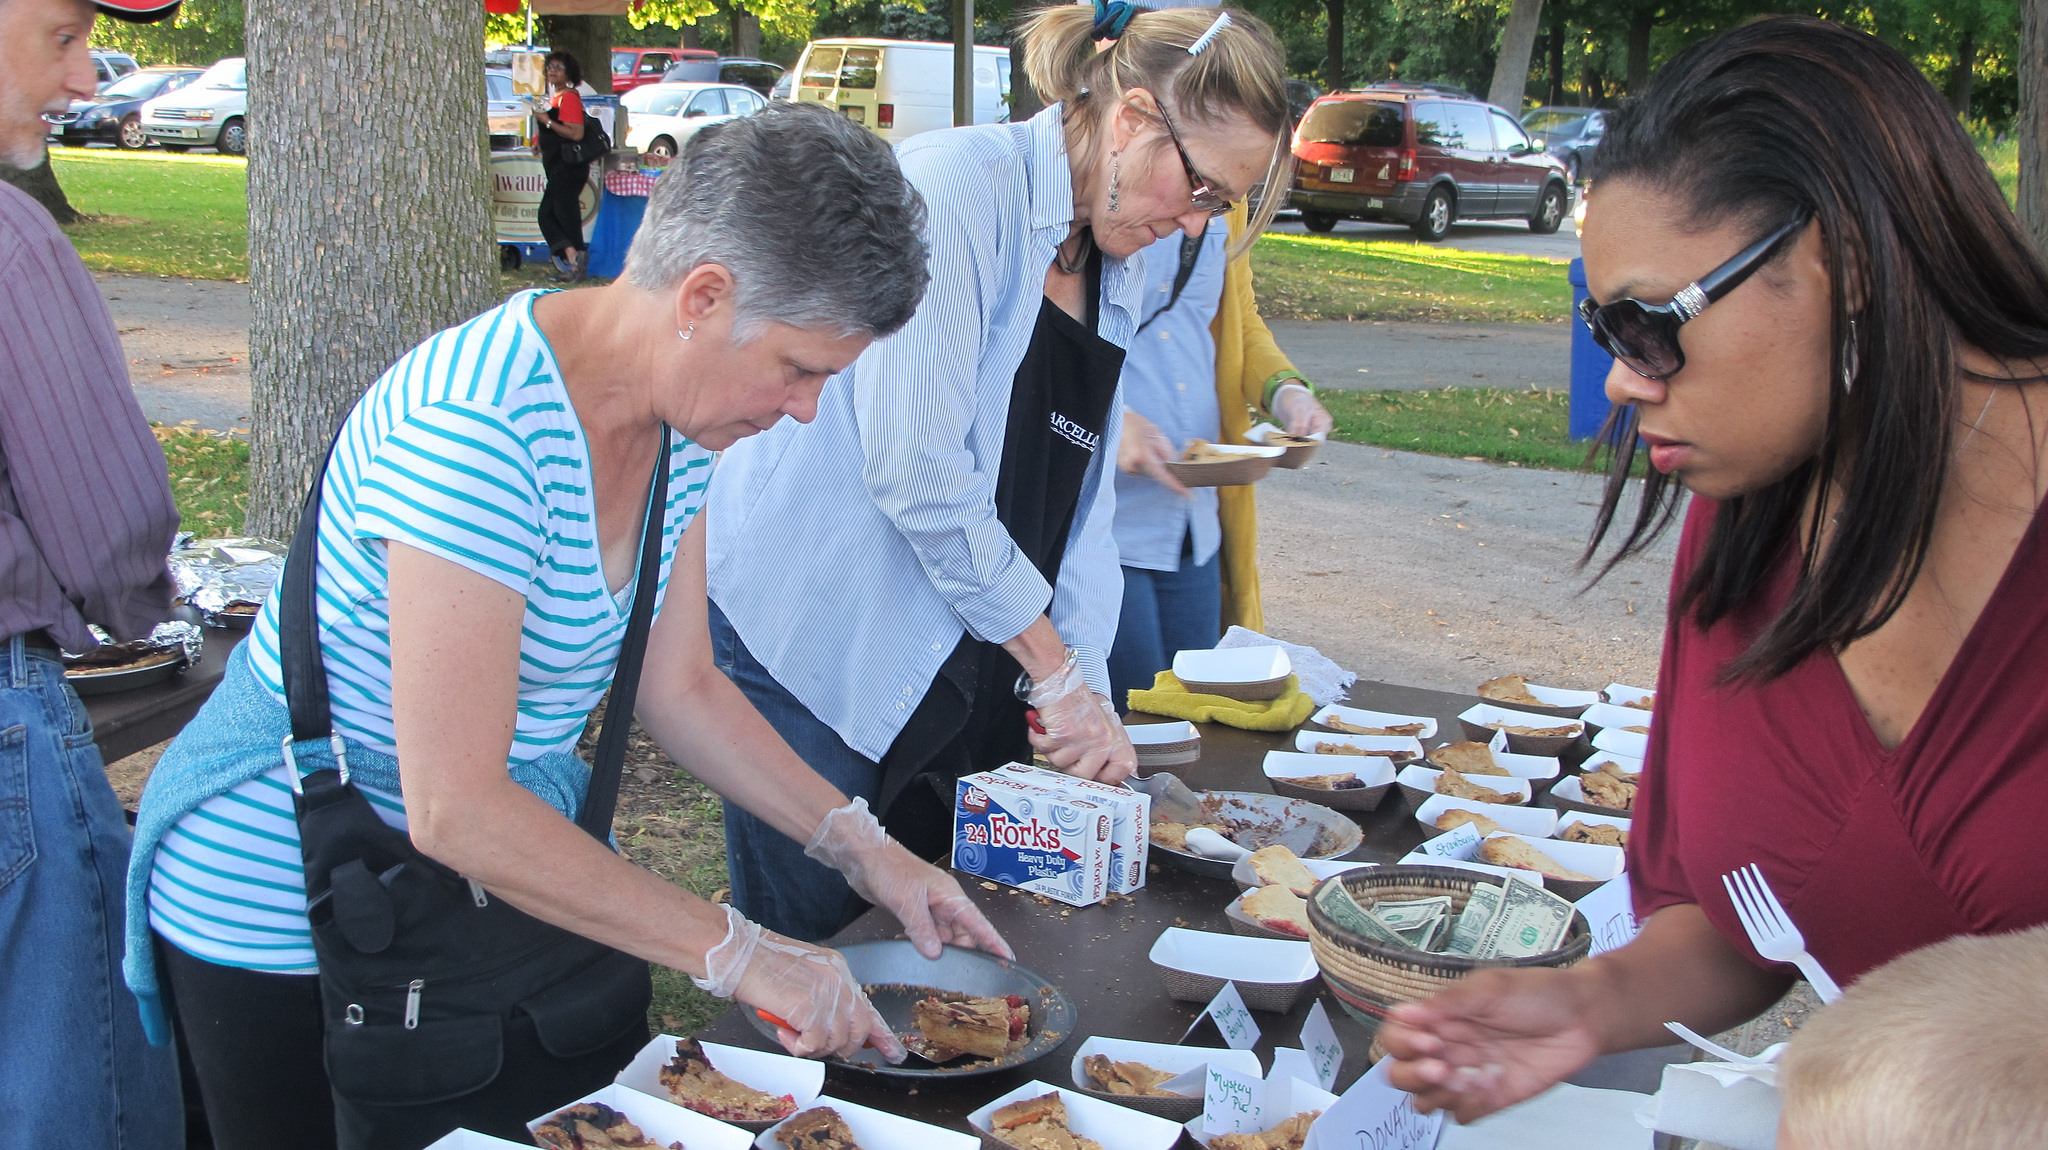 Volunteers cut and serve pie at a recent Wednesday at the Shell concert in Washington Park. (Photo by Andrea Waxman)